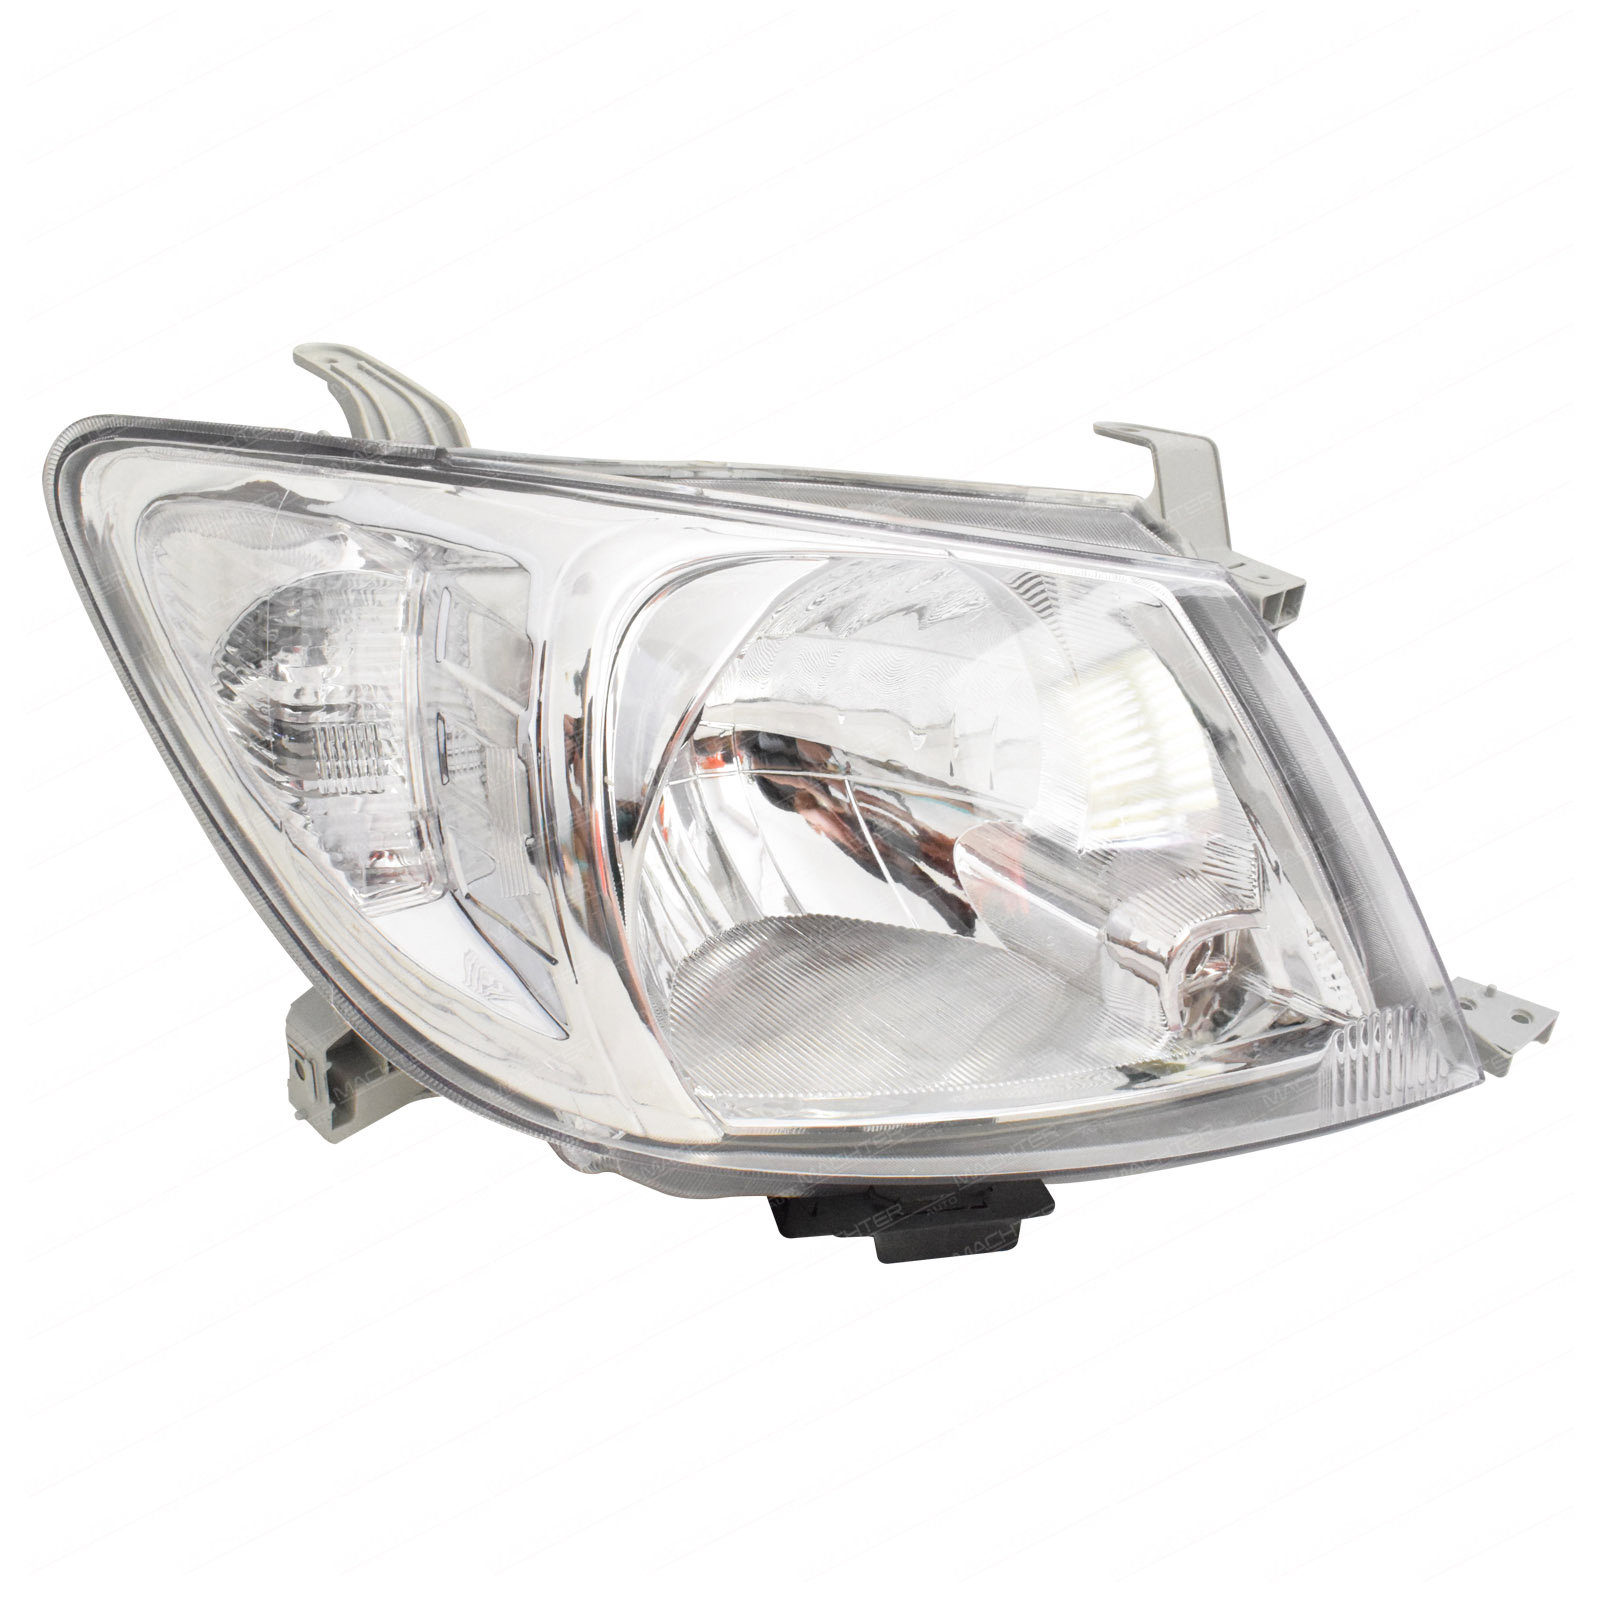 HeadLight Right Fit For Toyota Hilux 2008-2012 TGN KUN GGN image